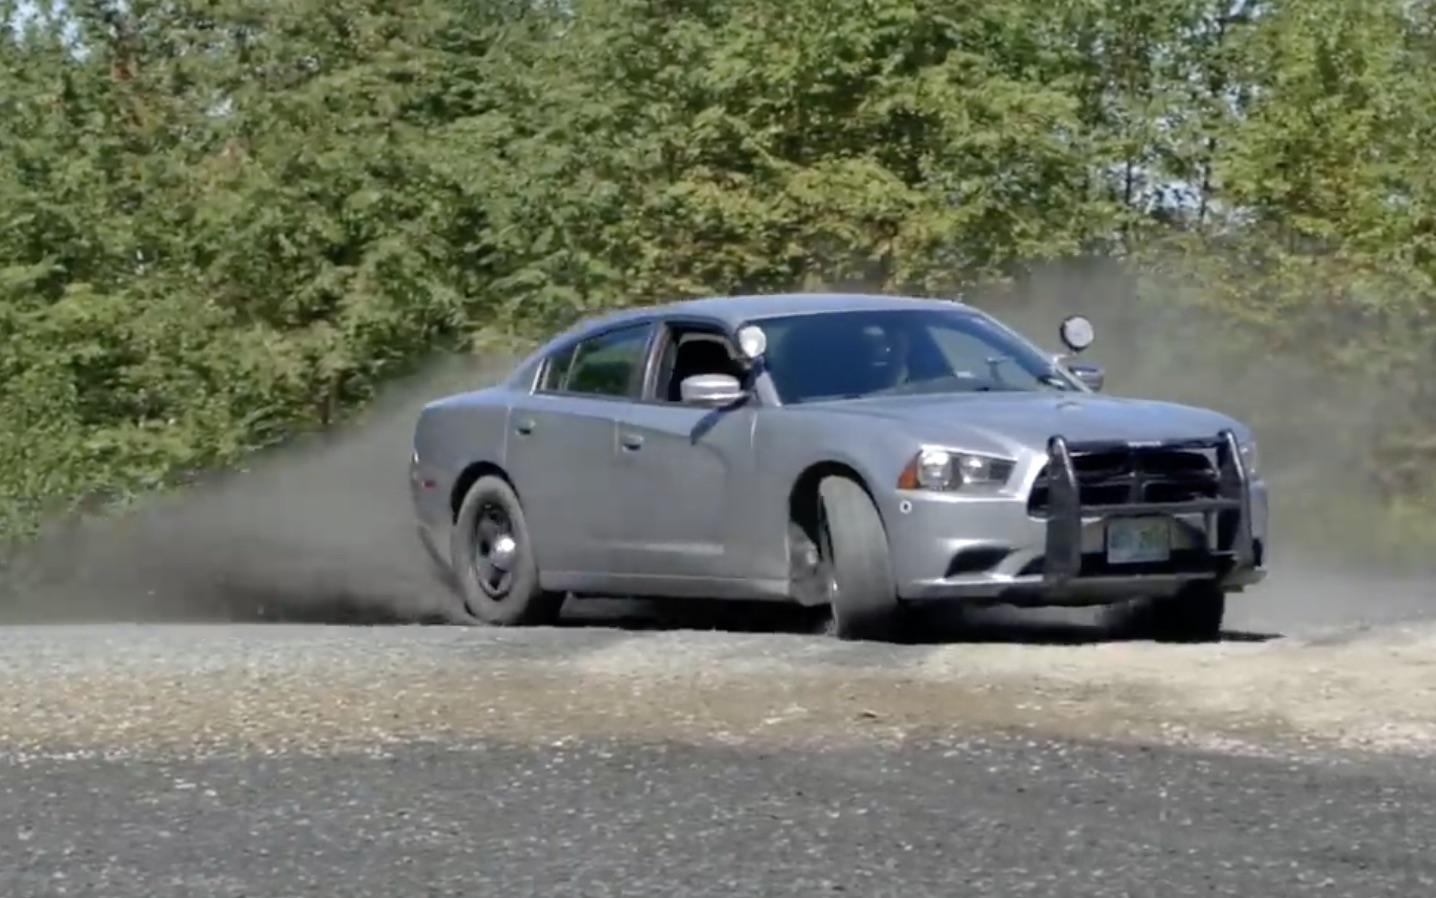 Sherriff Branford Approved: Can You Rally A Dodge Charger Pursuit?